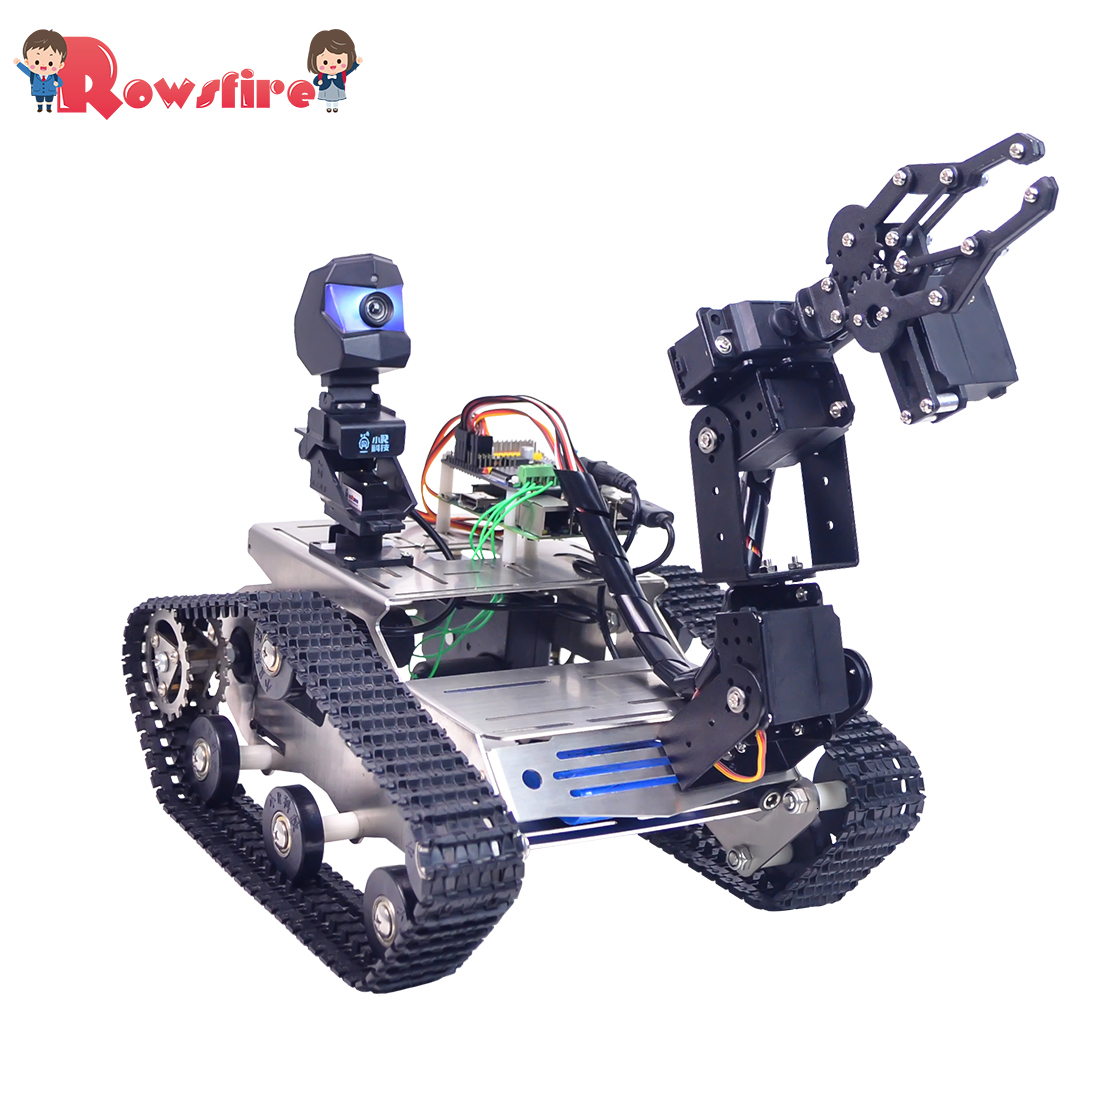 Programmable TH WiFi FPV Tank Robot Car Kit With Arm For Arduino MEGA - Standard Version/Avoidance Version Small/Larger Claw